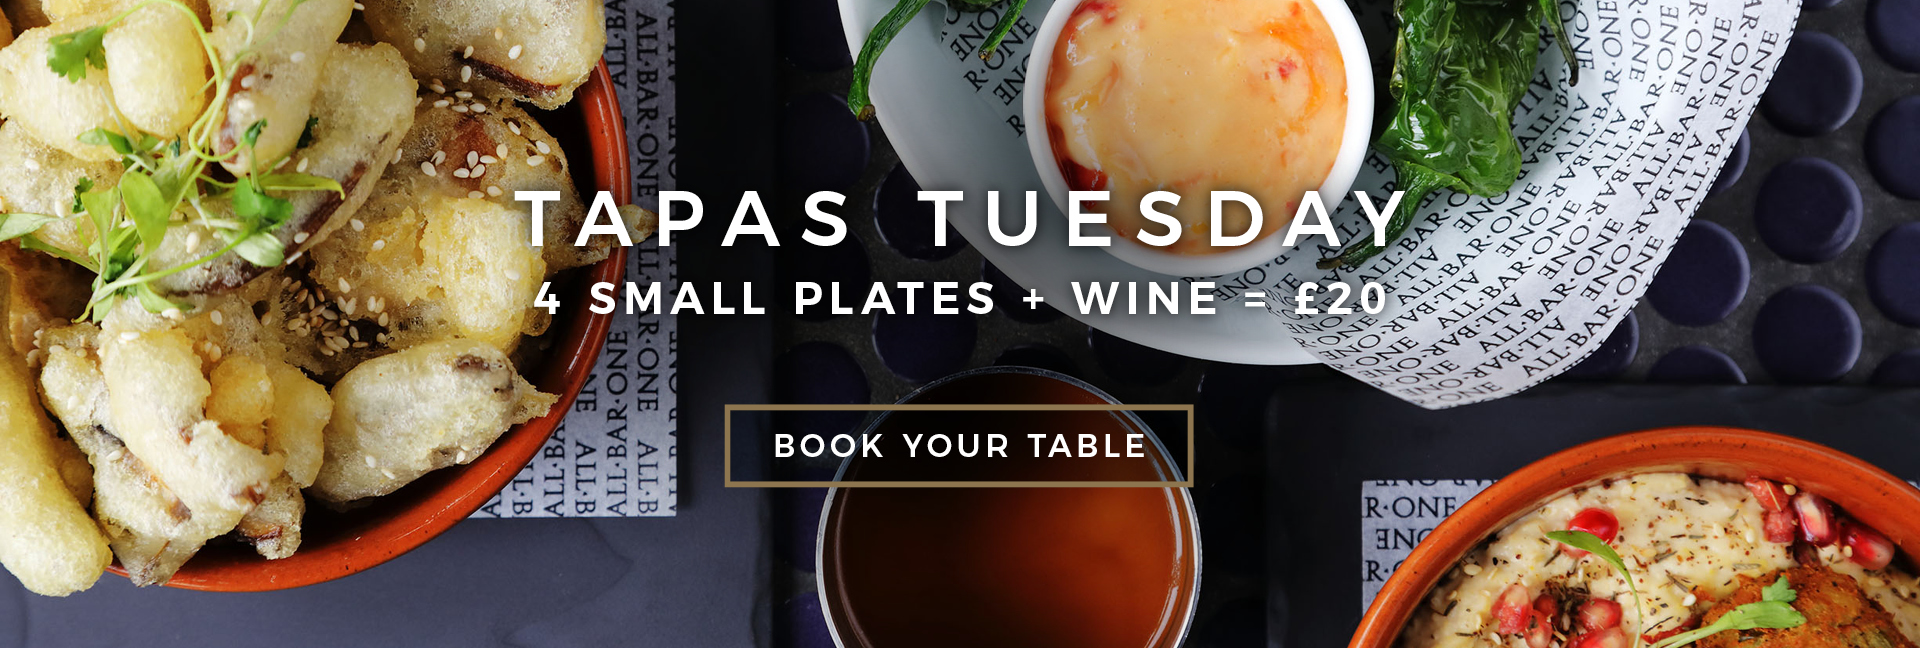 Tapas Tuesday at All Bar One Appold Street - Book now